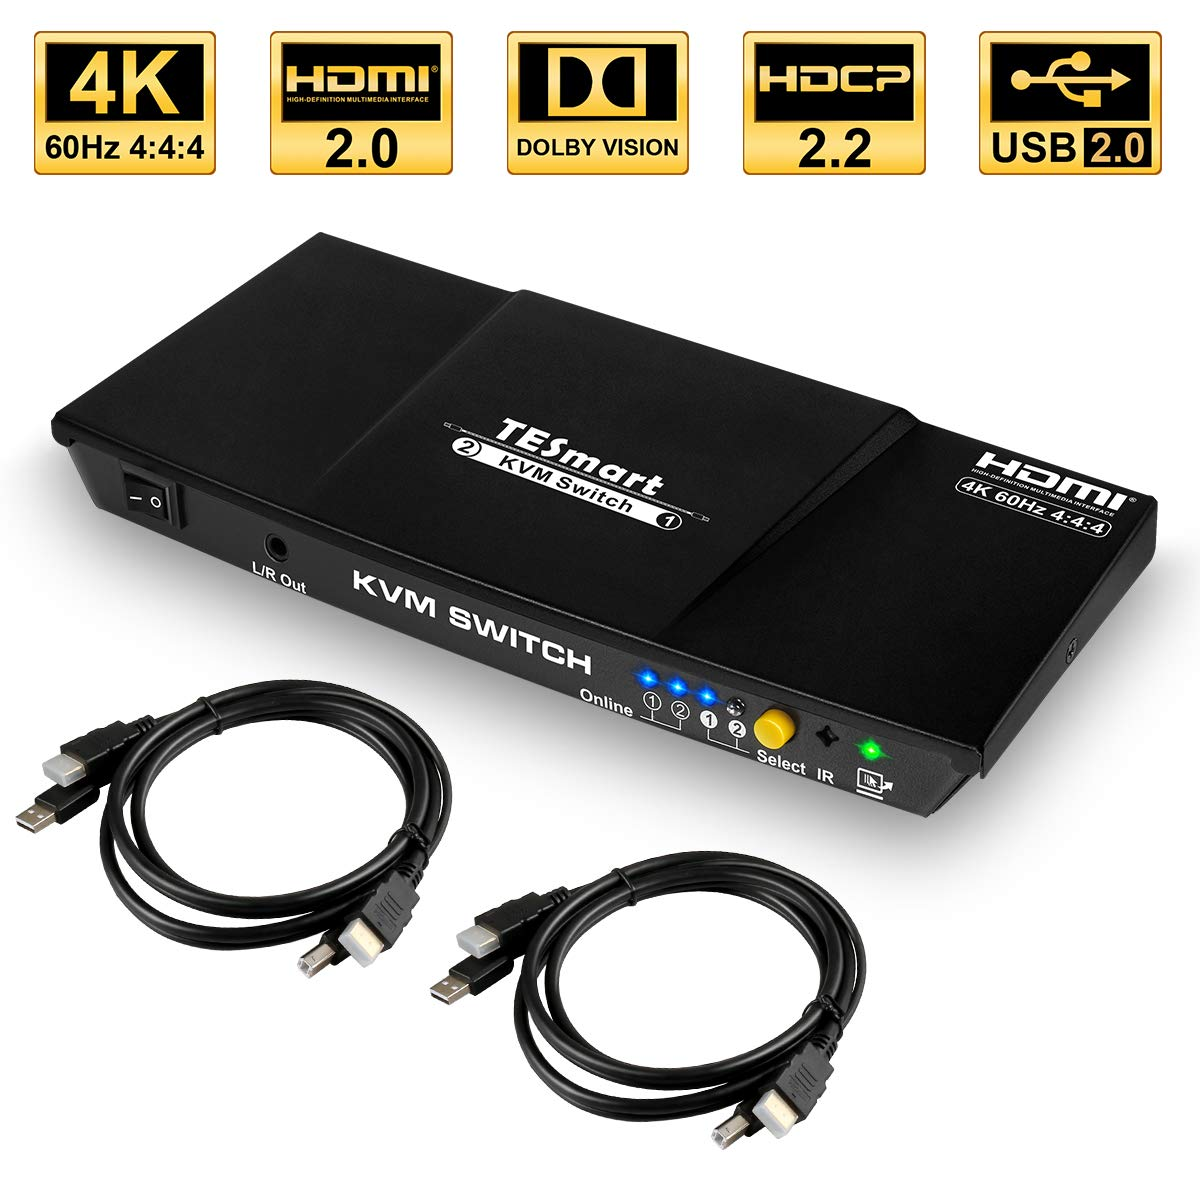 HDCP 2.2 Audio Out//Mic in 4K60Hz YUV444 18Gbps Dolby Atmos 2x1 USB 2.0 Keyboard//Mouse//Printer//Monitor//PC selector AV Access KVM Switch HDMI 2.0 2 Port IR Remote 2 in 1 Out HDR10 Dobly Vision